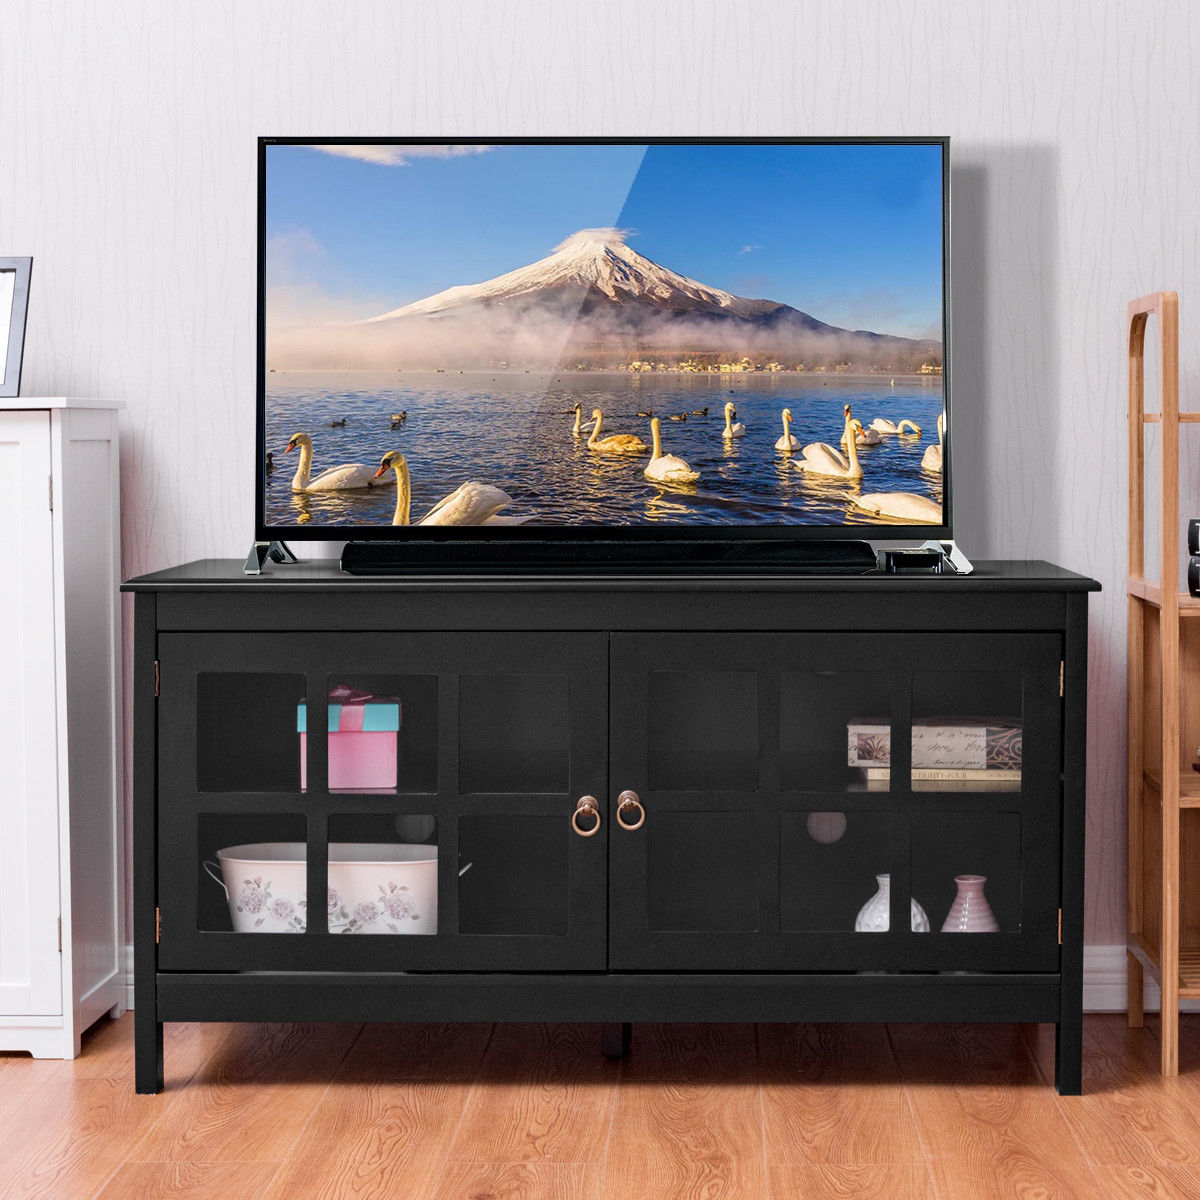 Giantex 50u0027u0027 TV Stand Modern Living Room Wood Storage Console Entertainment  Center With 2 Doors Home Furniture HW56756 In Living Room Cabinets From ...